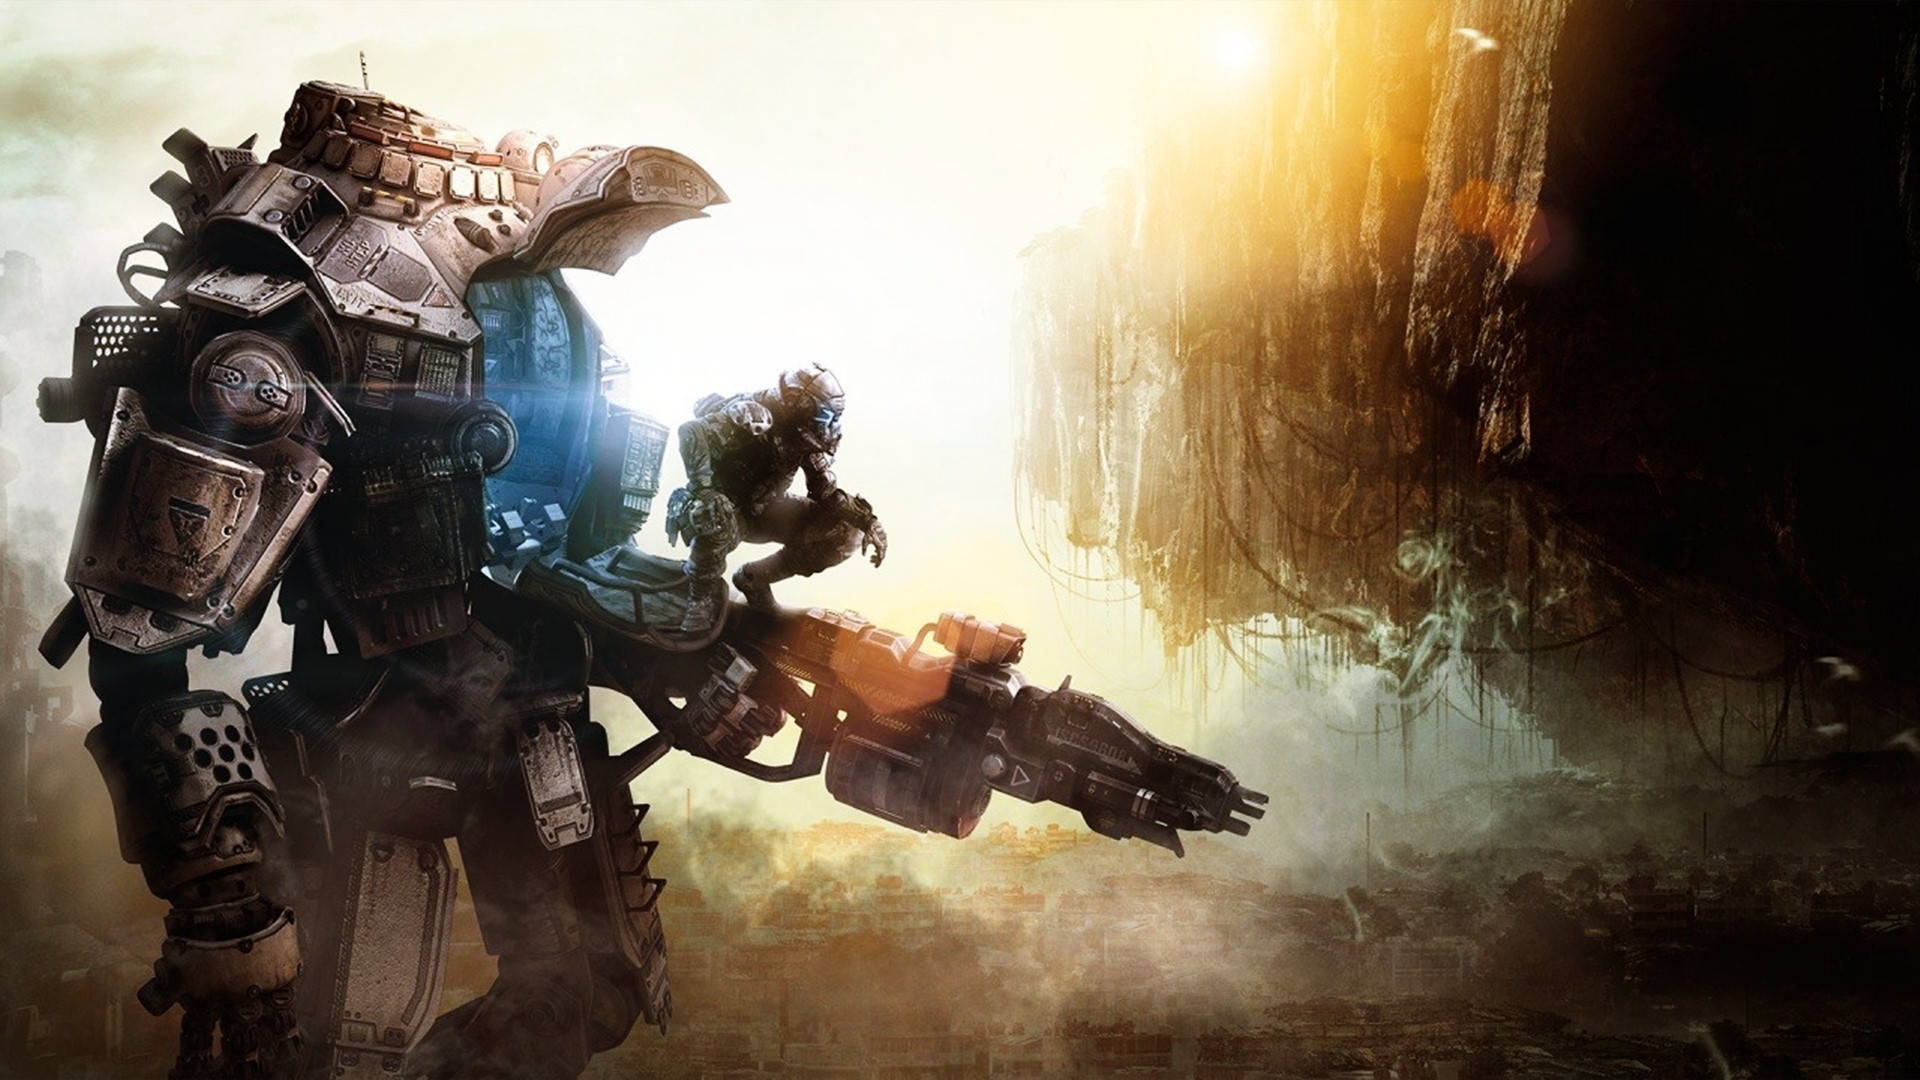 Titanfall  Artwork Wallpaper  Games HD Wallpapers 1920x1080